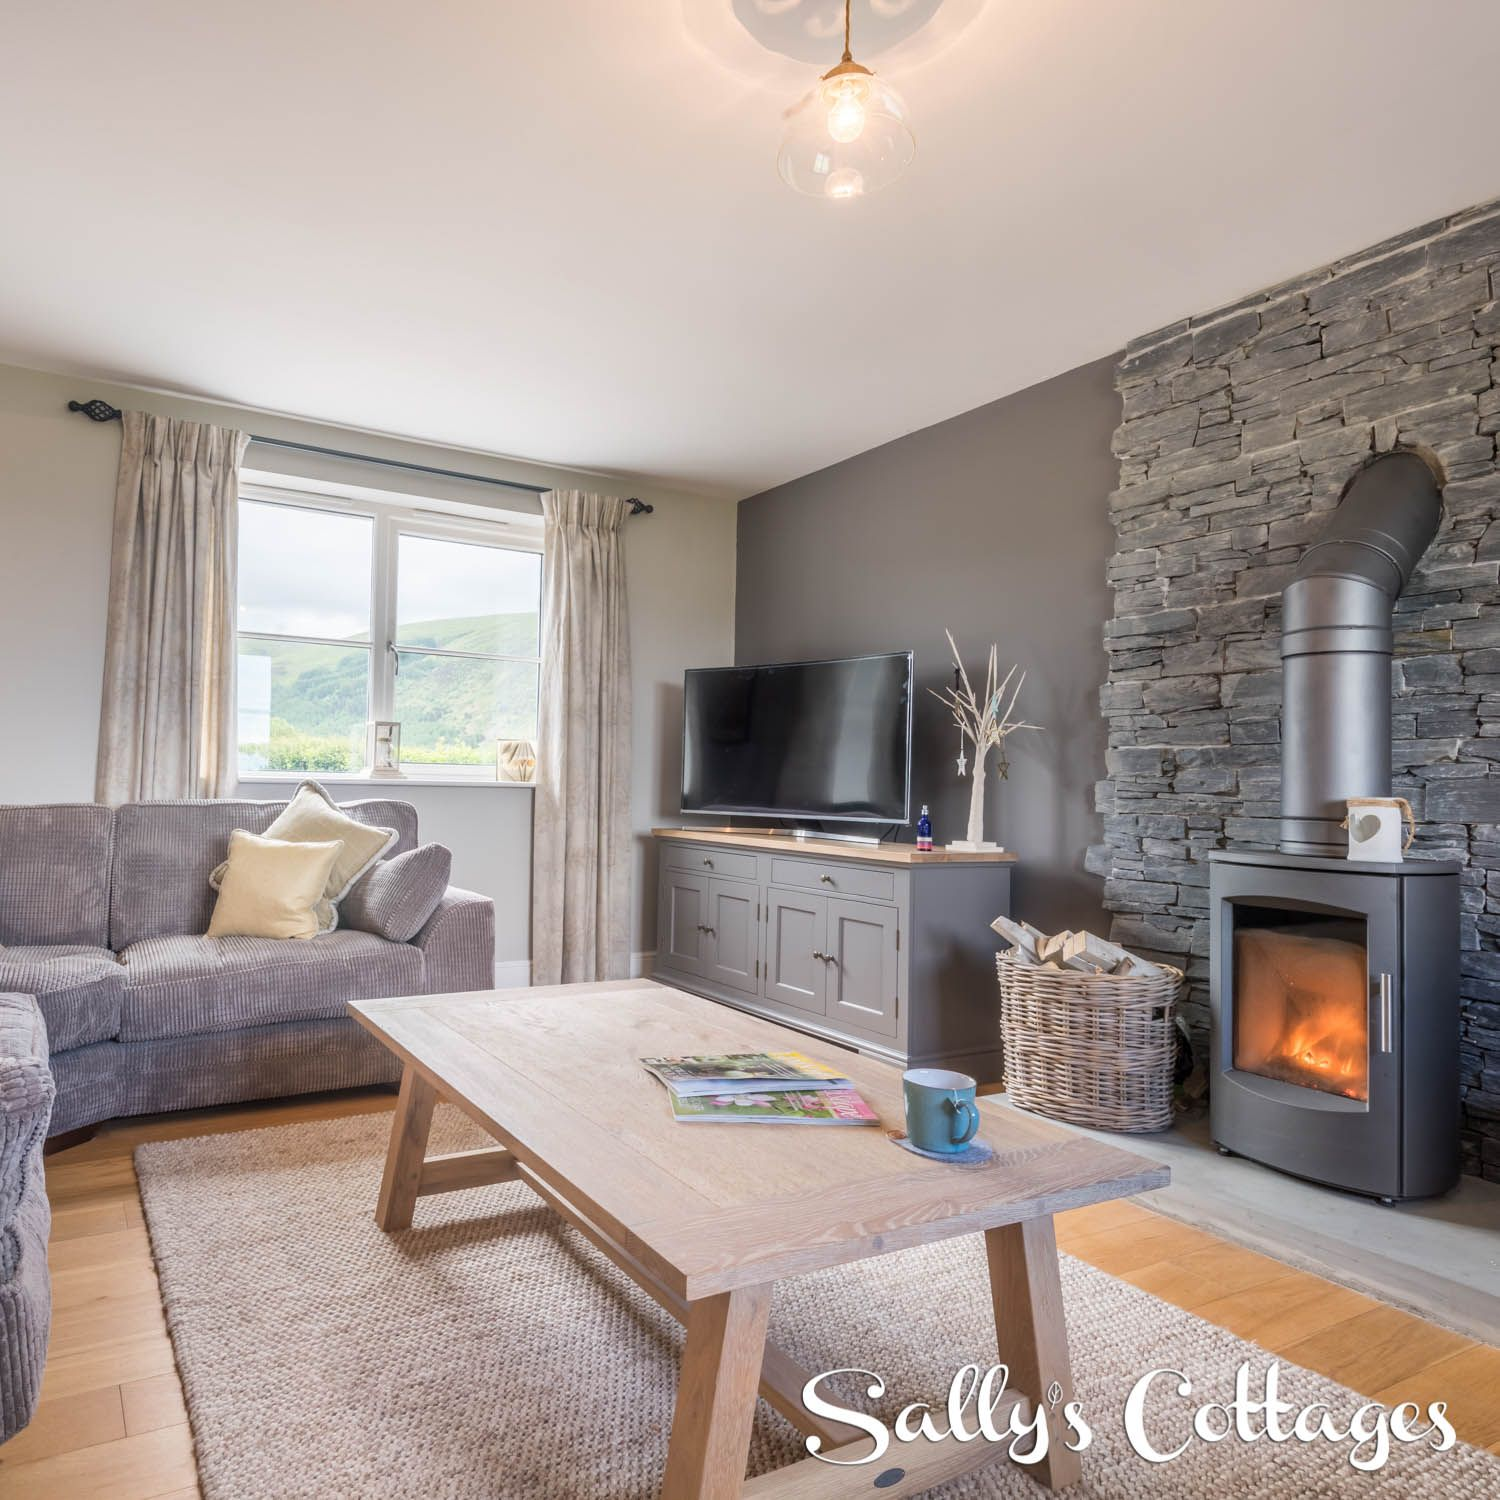 The Cosy Sitting Room With Traditional Log Burner Sumptuous Sofas